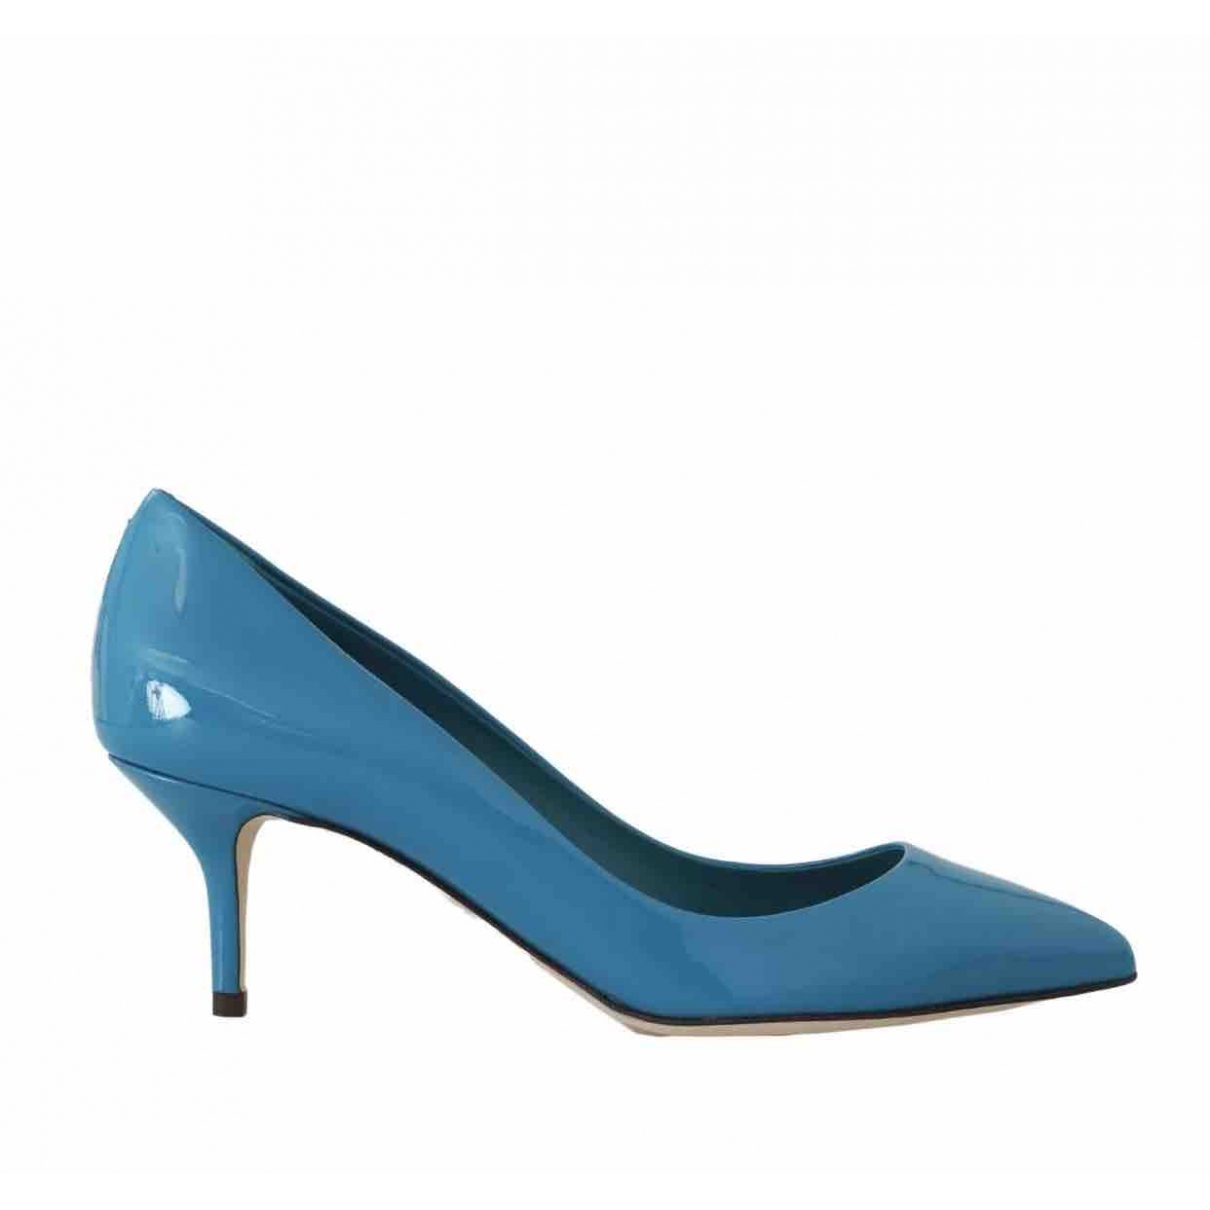 Dolce & Gabbana \N Pumps in  Blau Lackleder